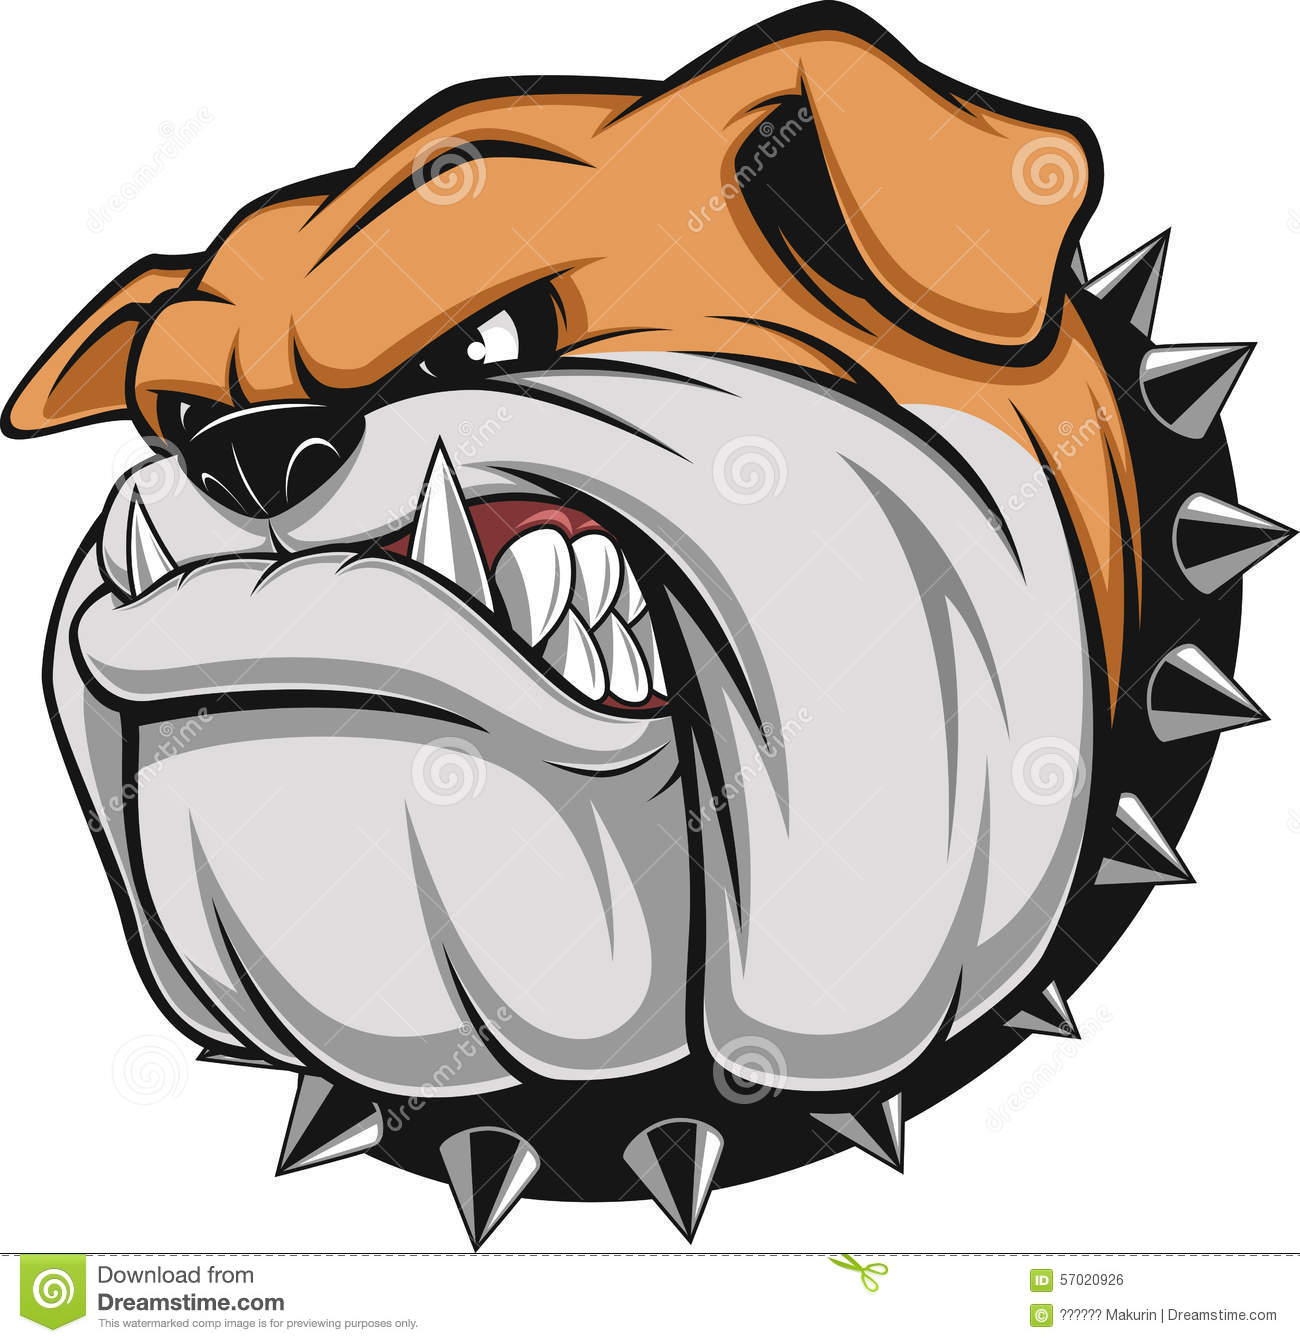 Snarl clipart #13, Download drawings